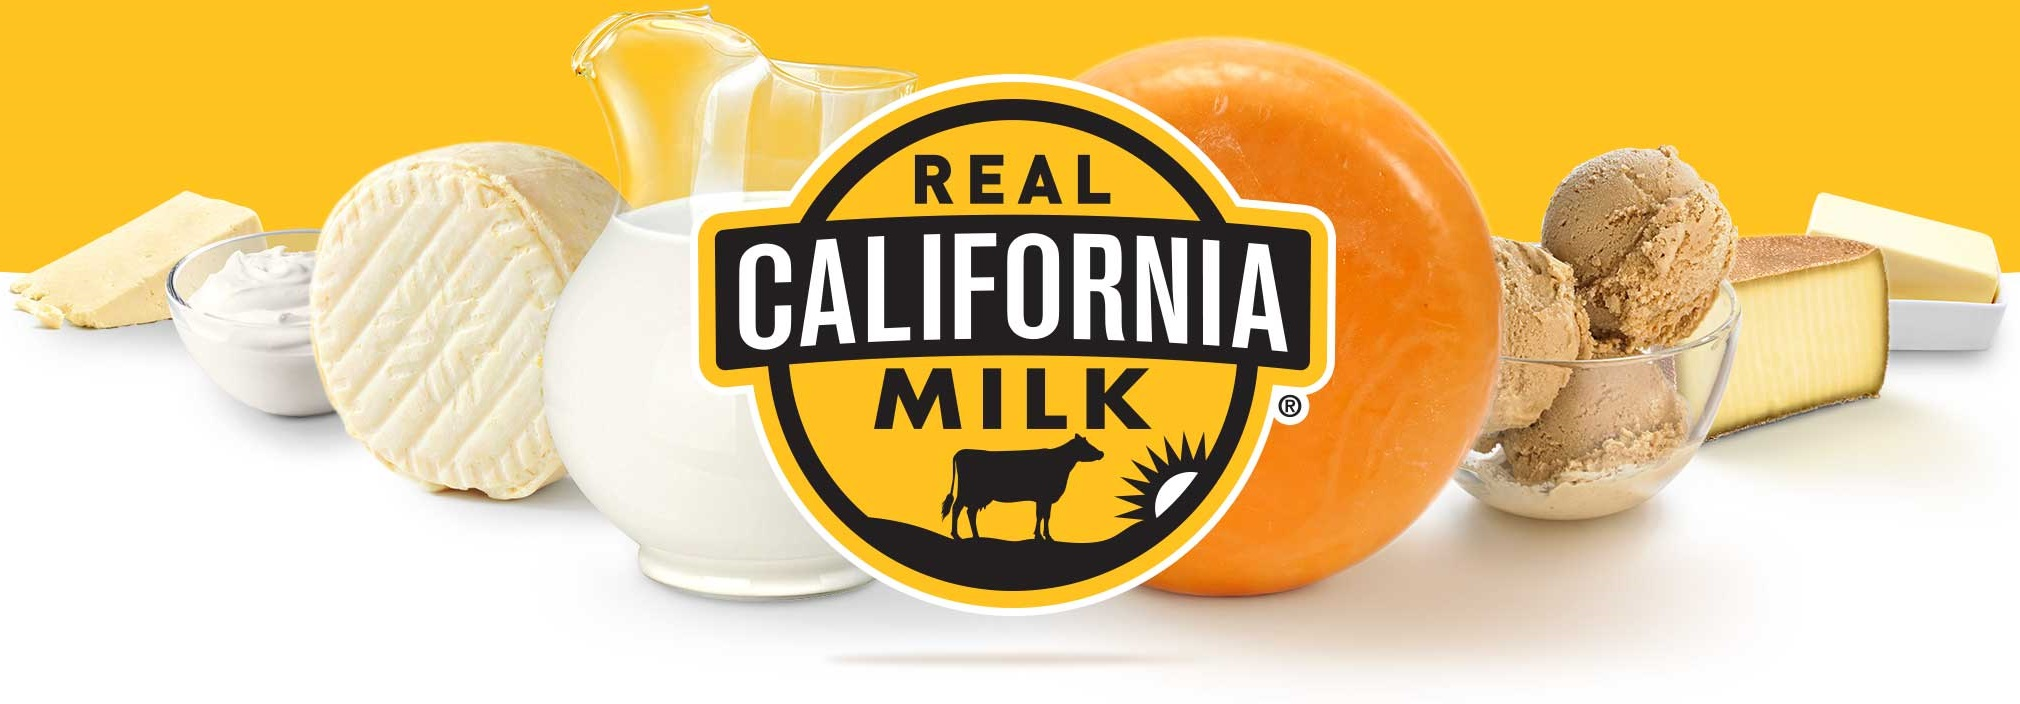 Real California Milk Unveils 2017 Rose Parade Float